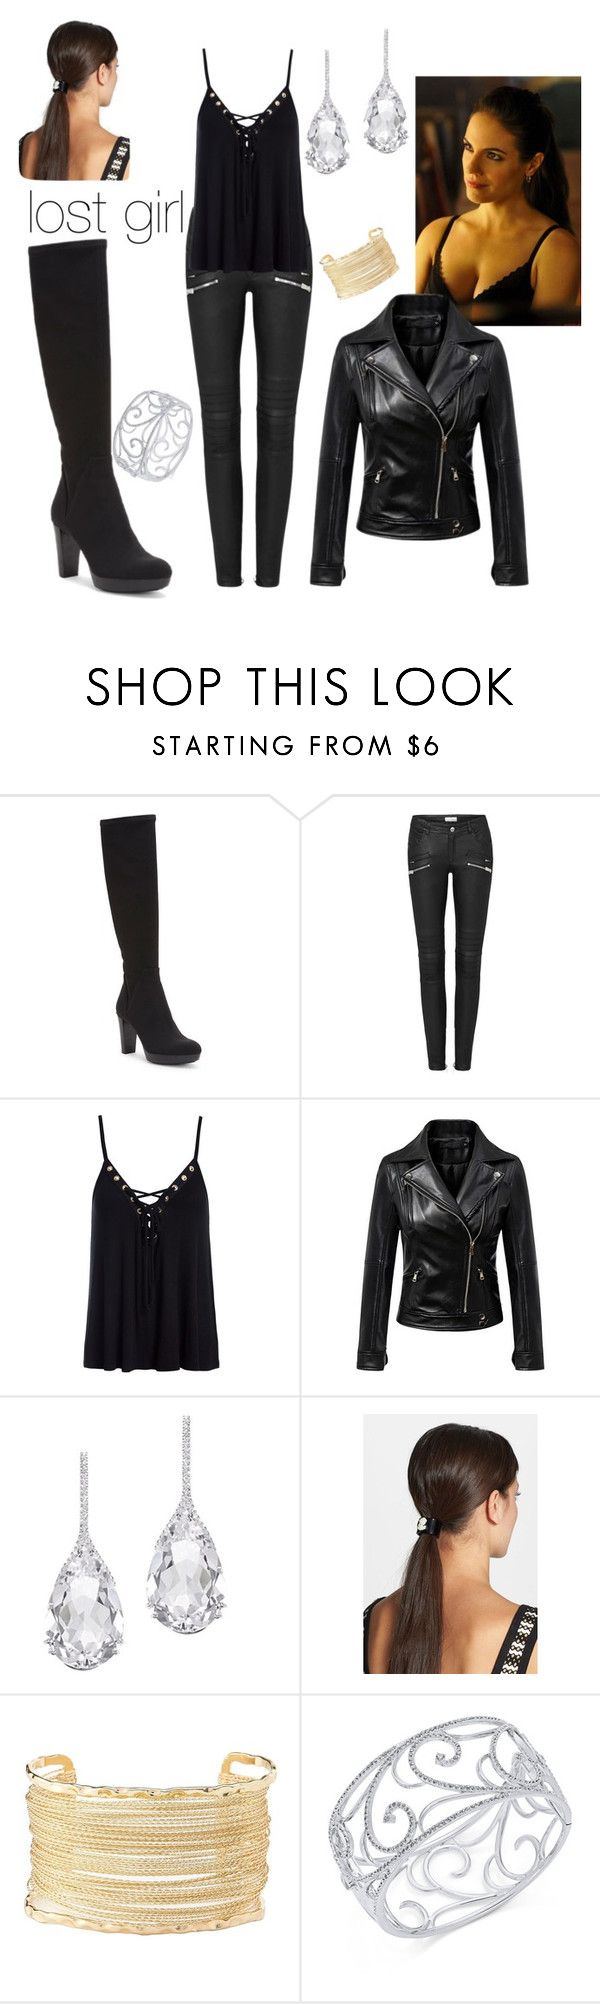 """""""bo from lost girl style"""" by melindamarr ❤ liked on Polyvore featuring Donald J Pliner, Sans Souci, Chicnova Fashion, Plukka, L. Erickson, Charlotte Russe and Eliot Danori"""